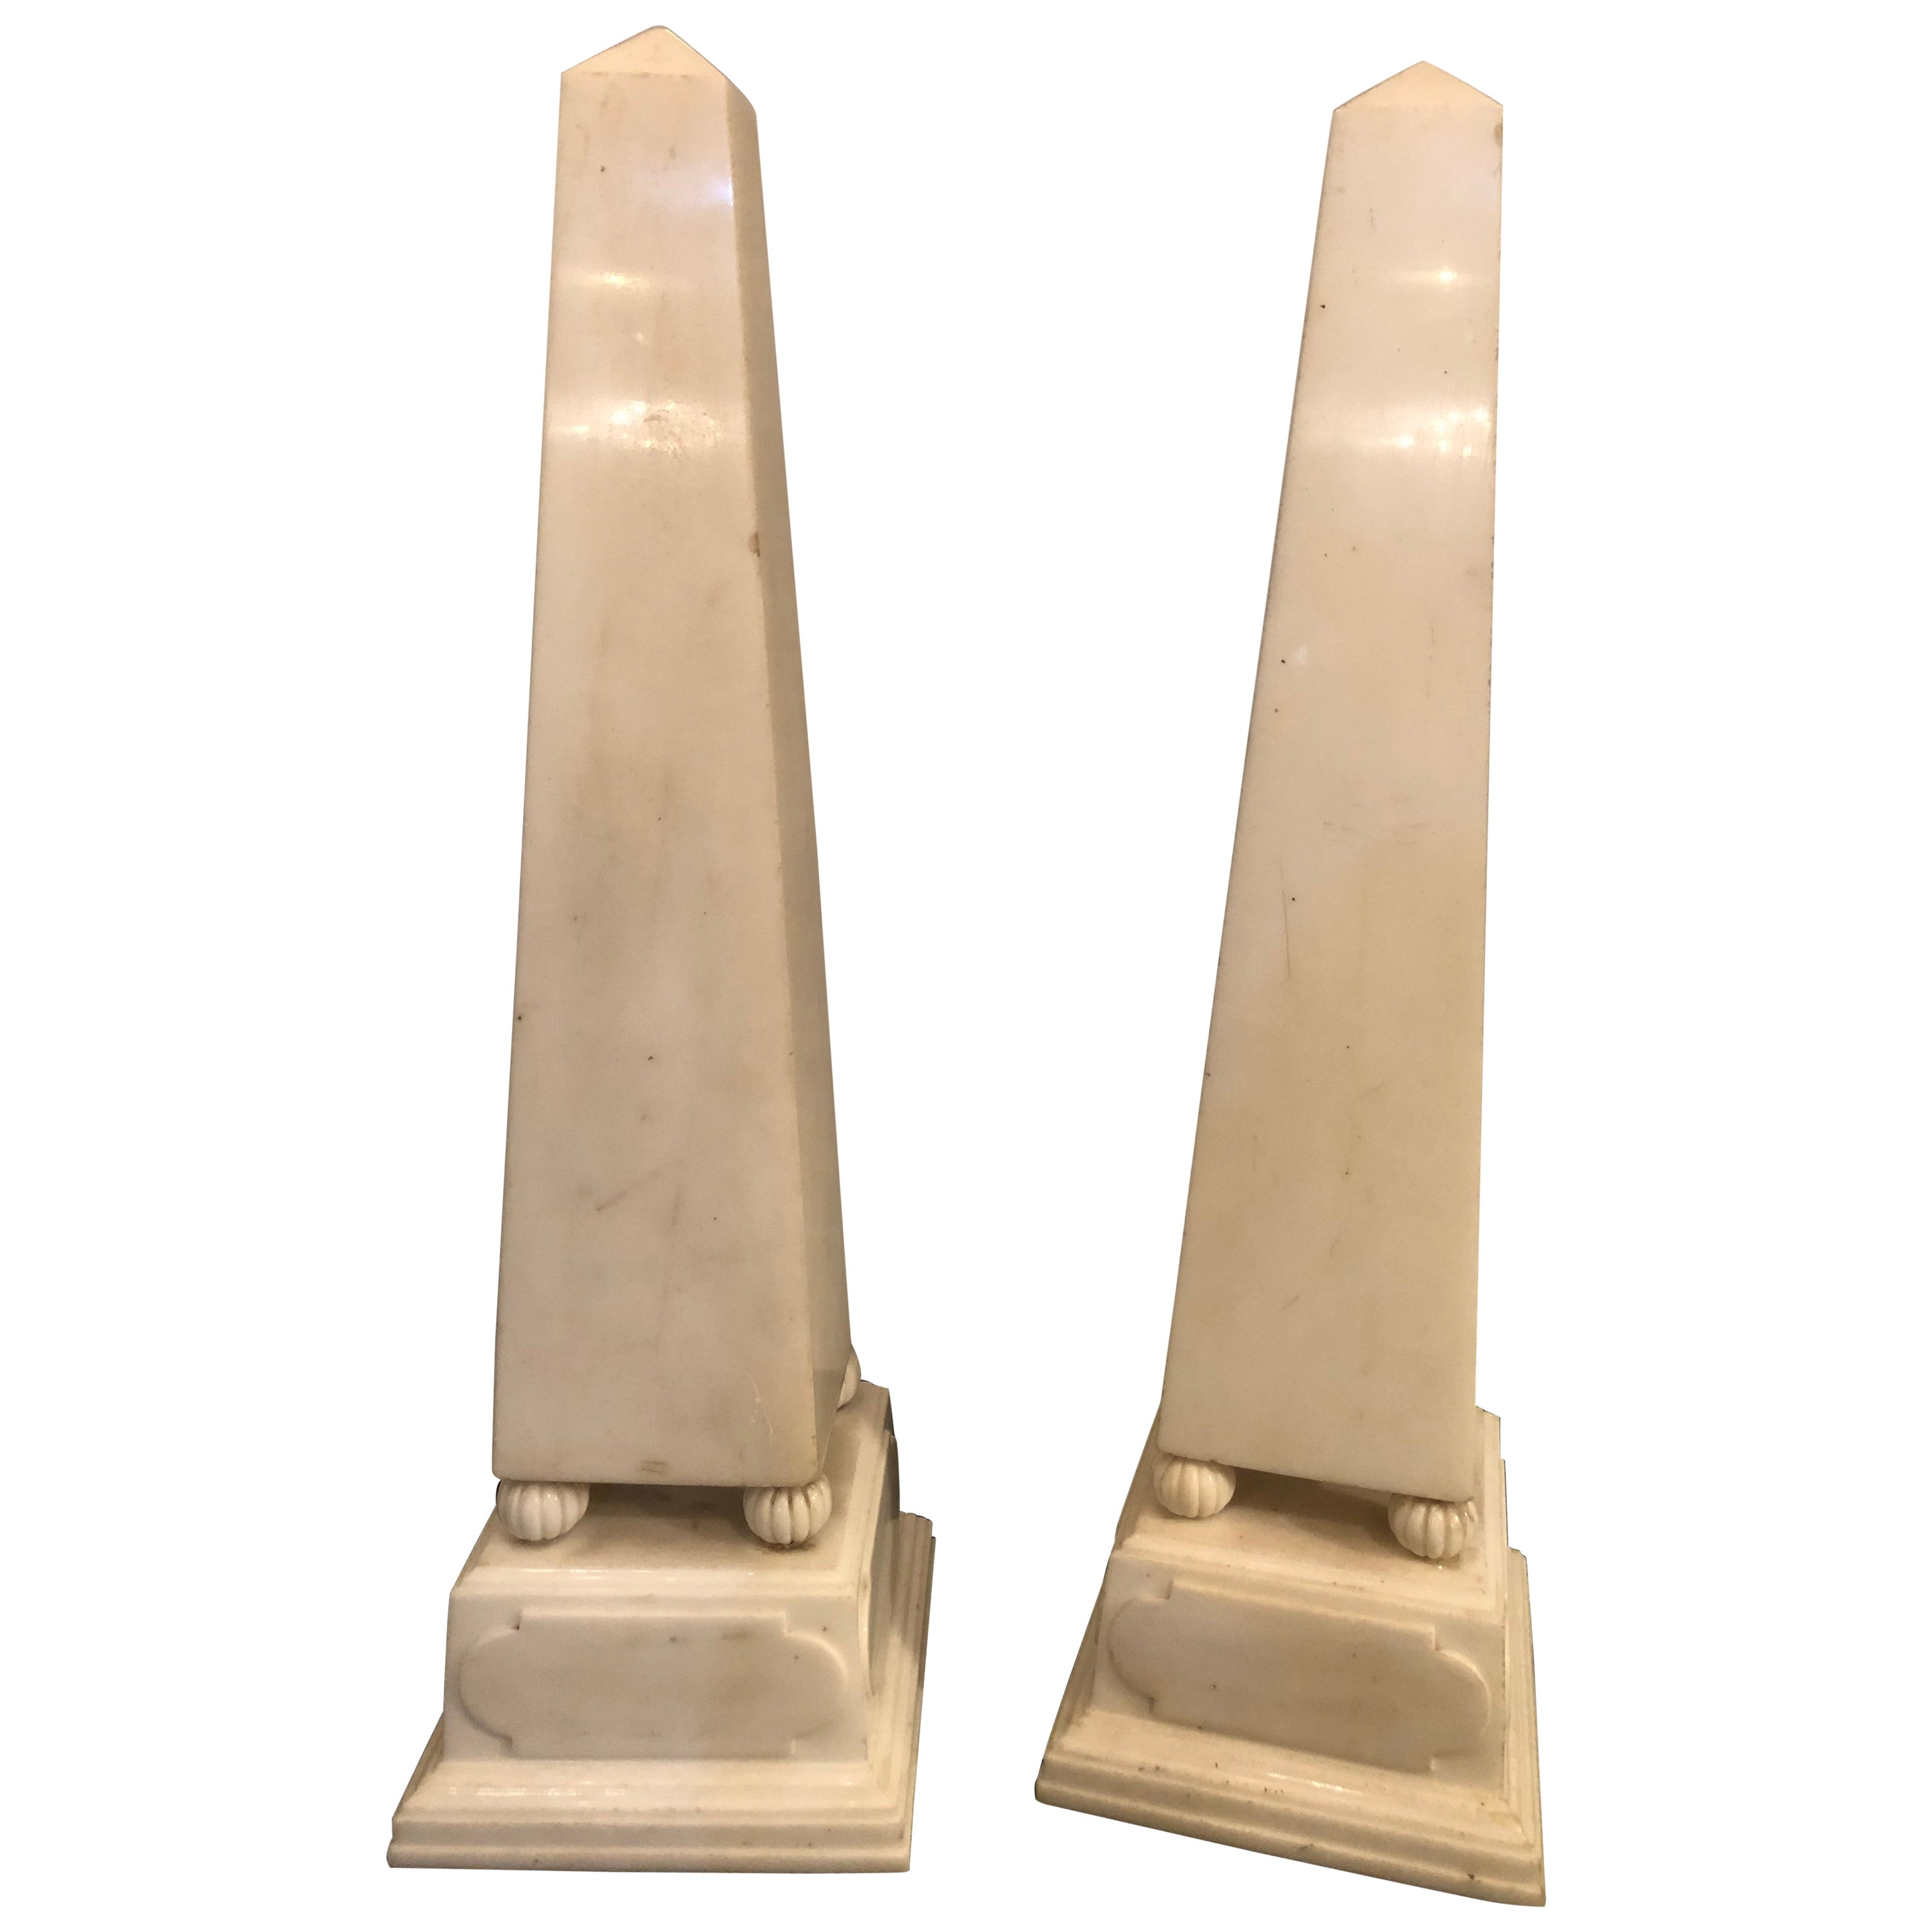 Pair of Large Antique 19th-20th Century Solid Marble Obelisks on Pedestals